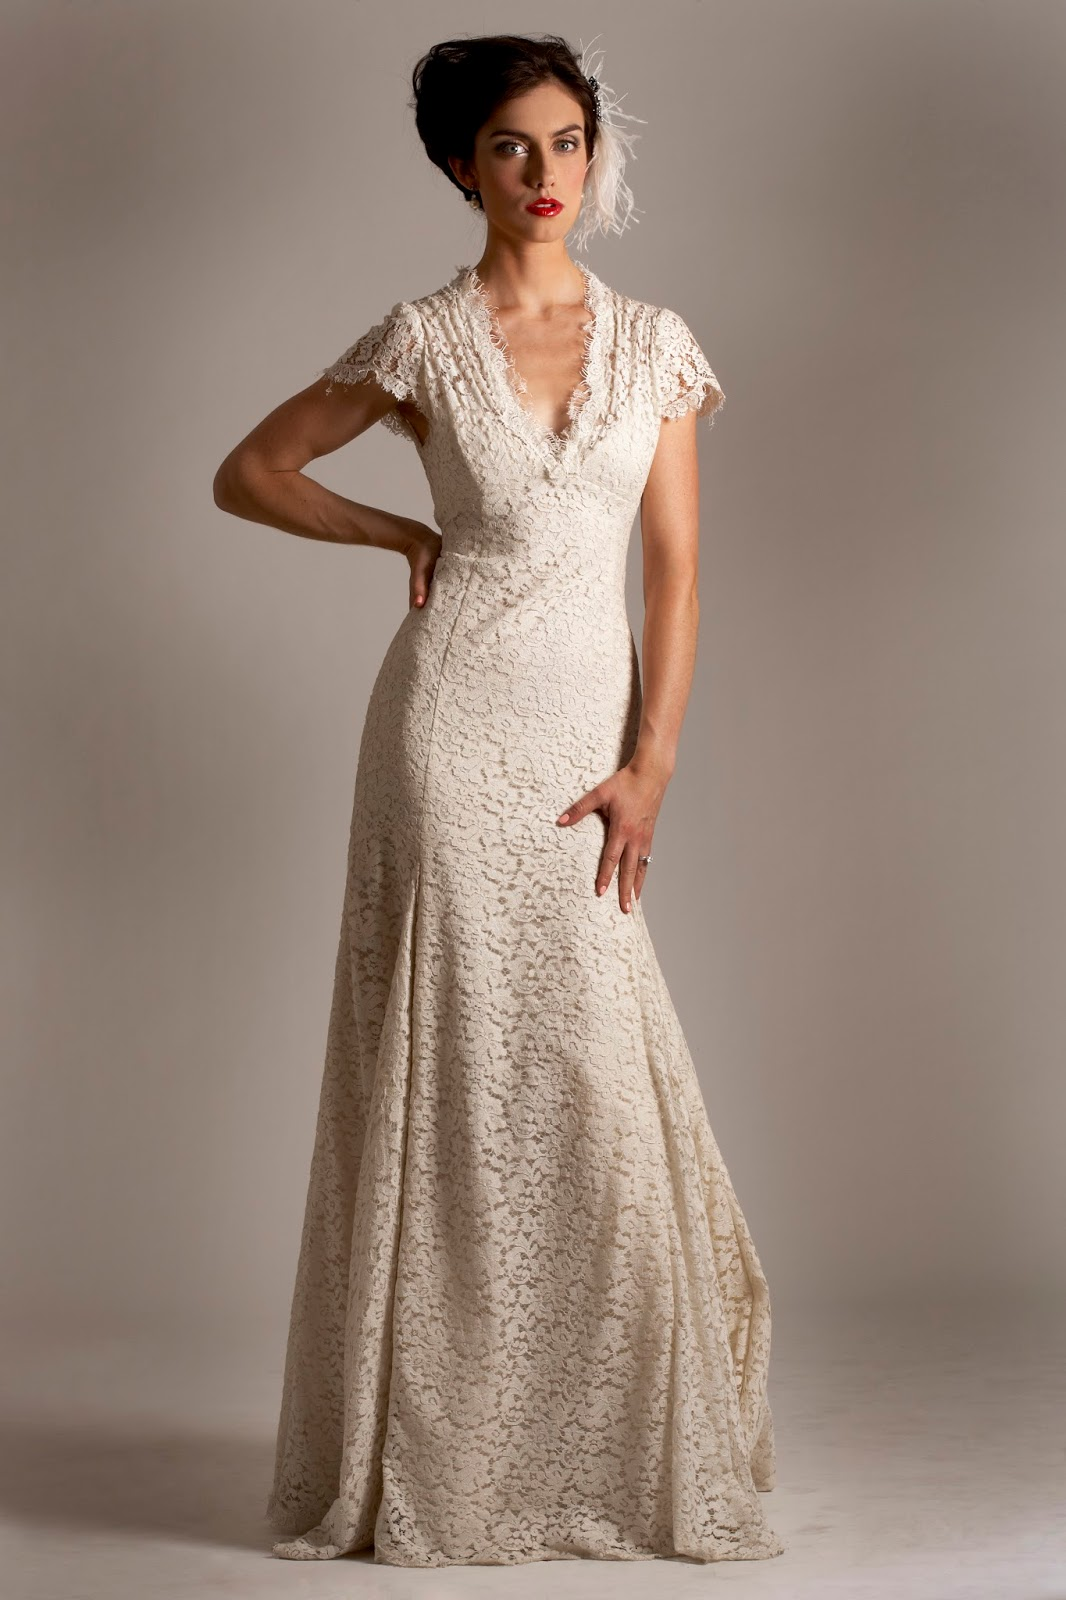 Informal Wedding Dresses For Older Brides.Wedding Dresses For Older Brides Over 50 Wedding Dresses Cold Climates